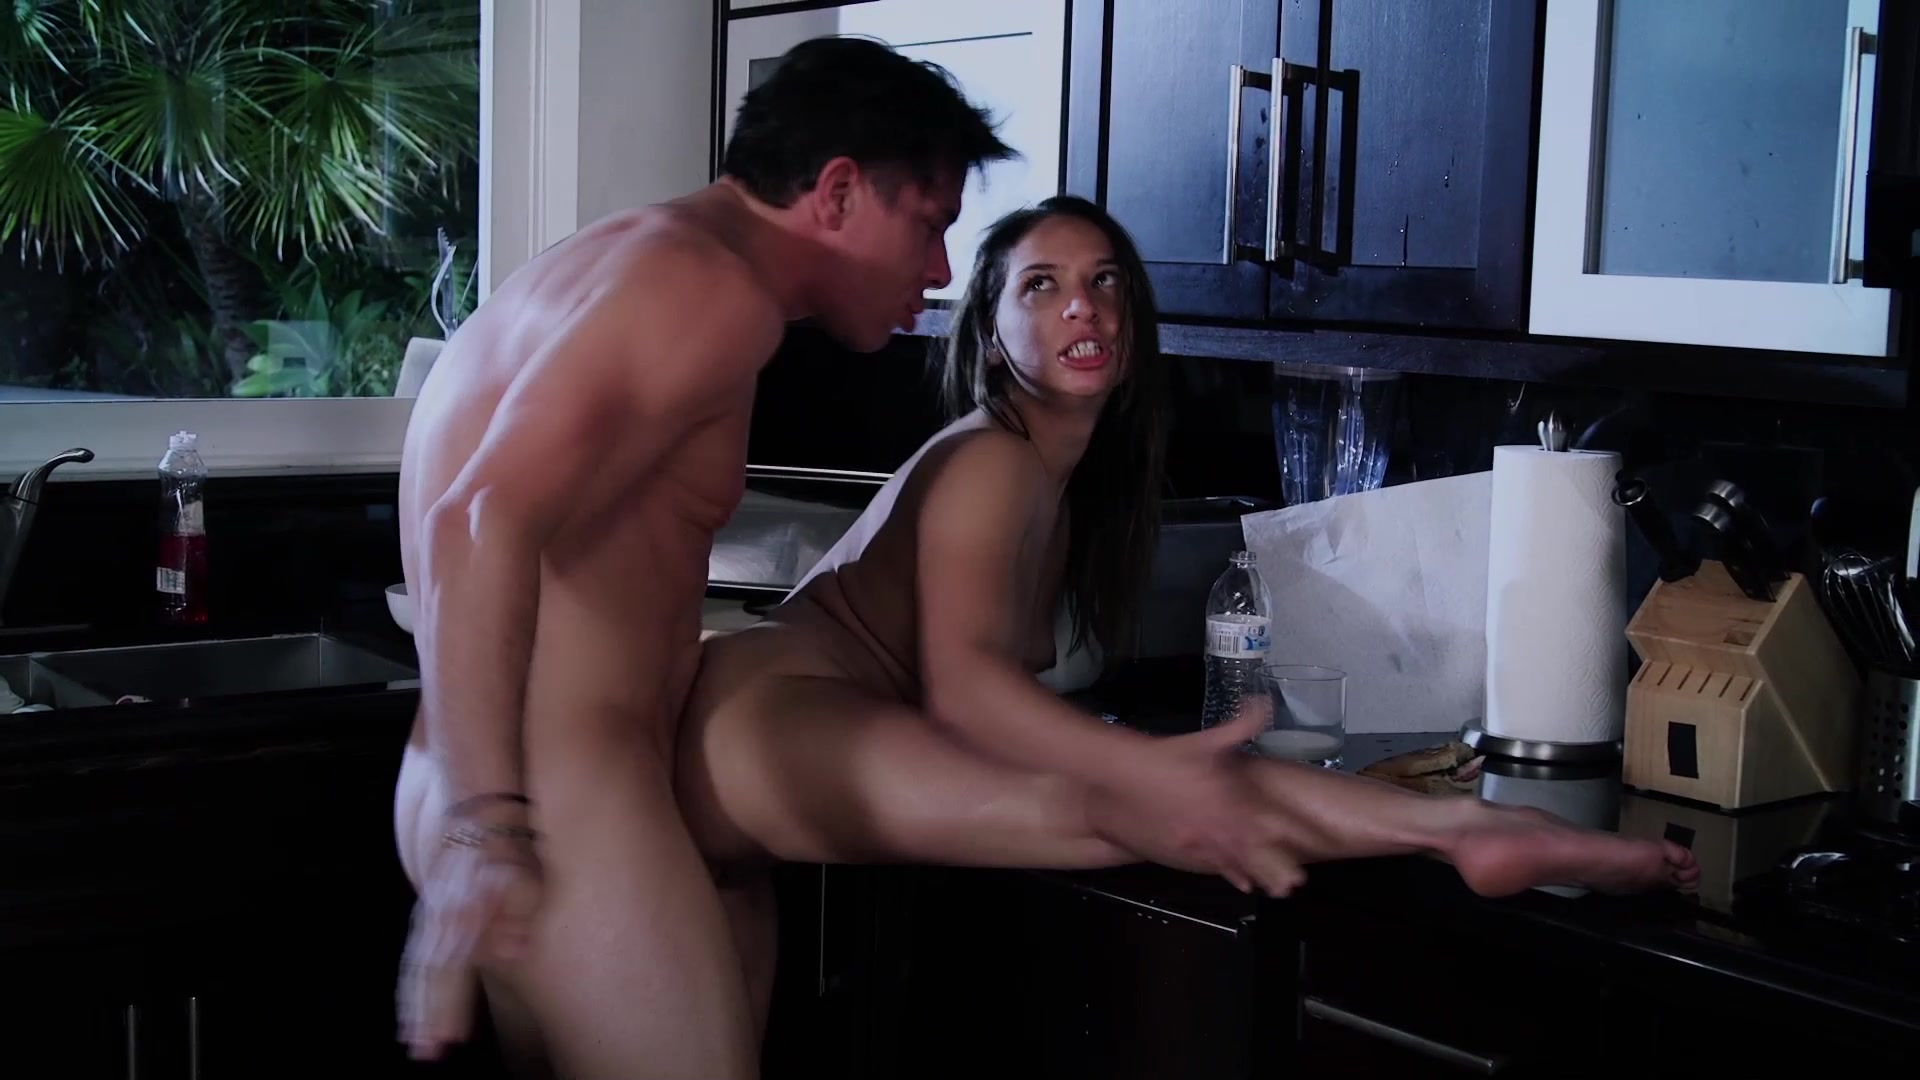 Scene with Mick Blue and Sara Luvv - image 14 out of 20